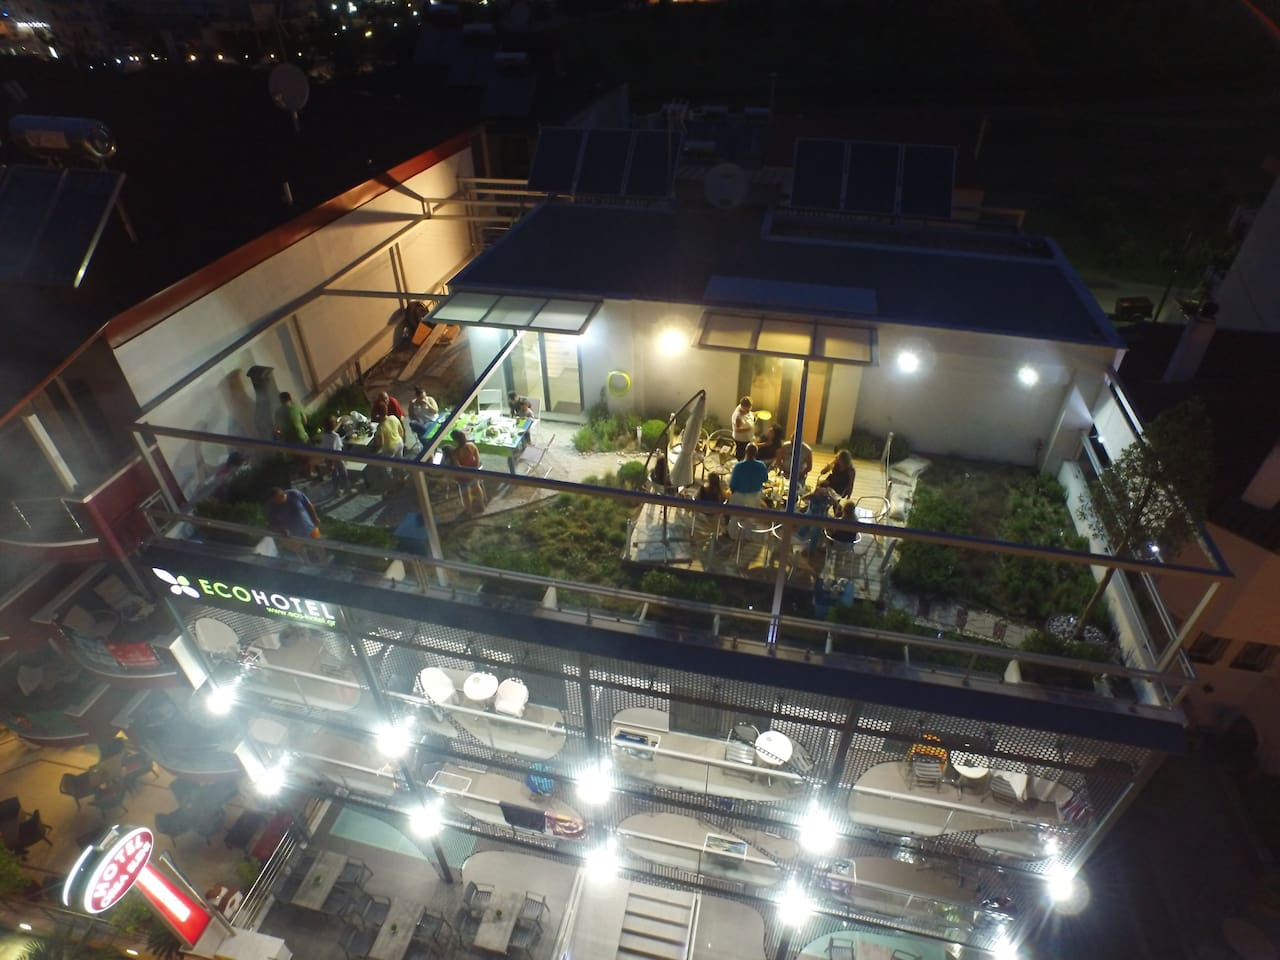 Eco Hotel Paralia Green Roof Garden View by night